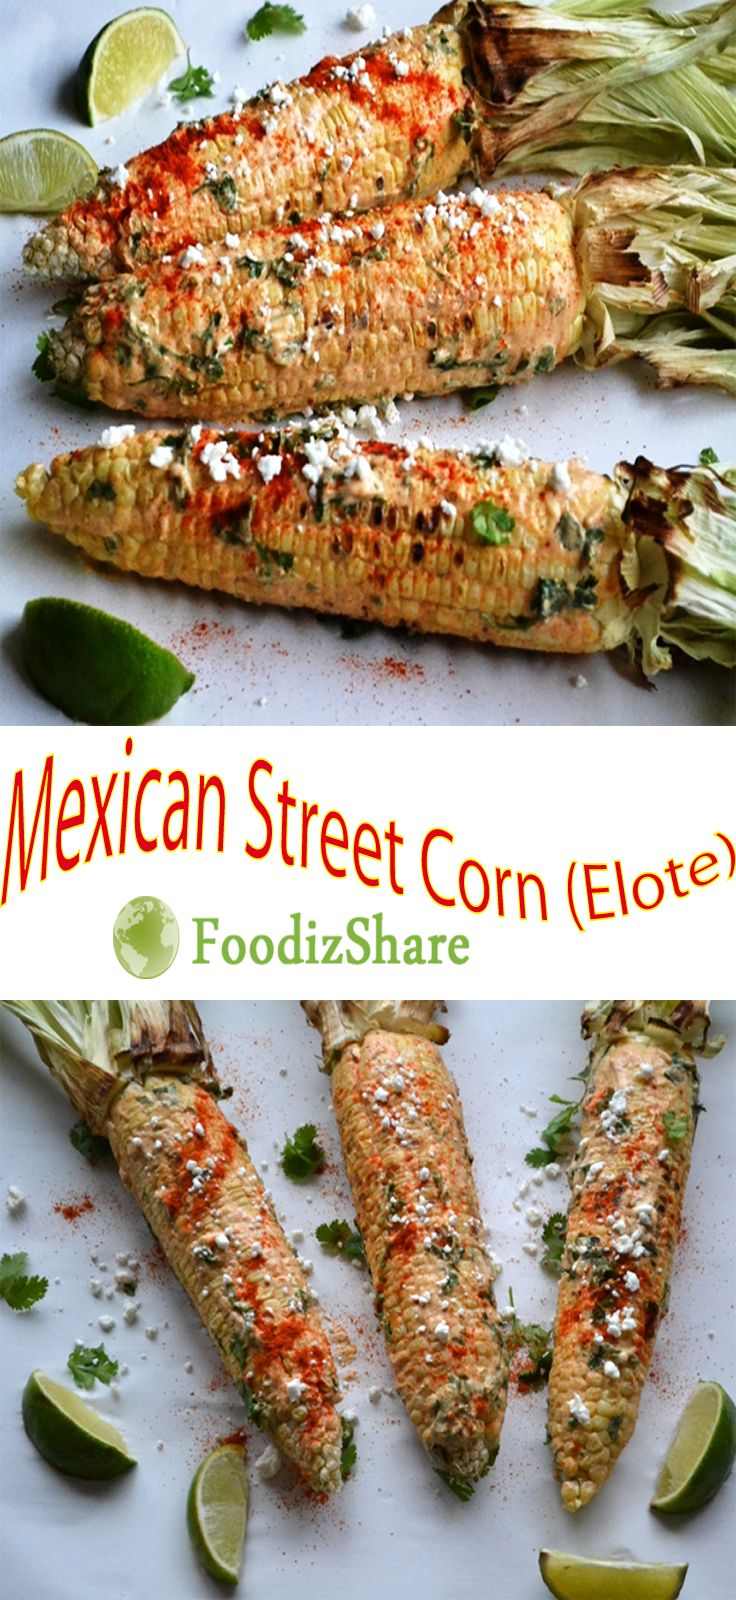 Elote is one of the best ways to eat corn on the cob. foodizshare.com